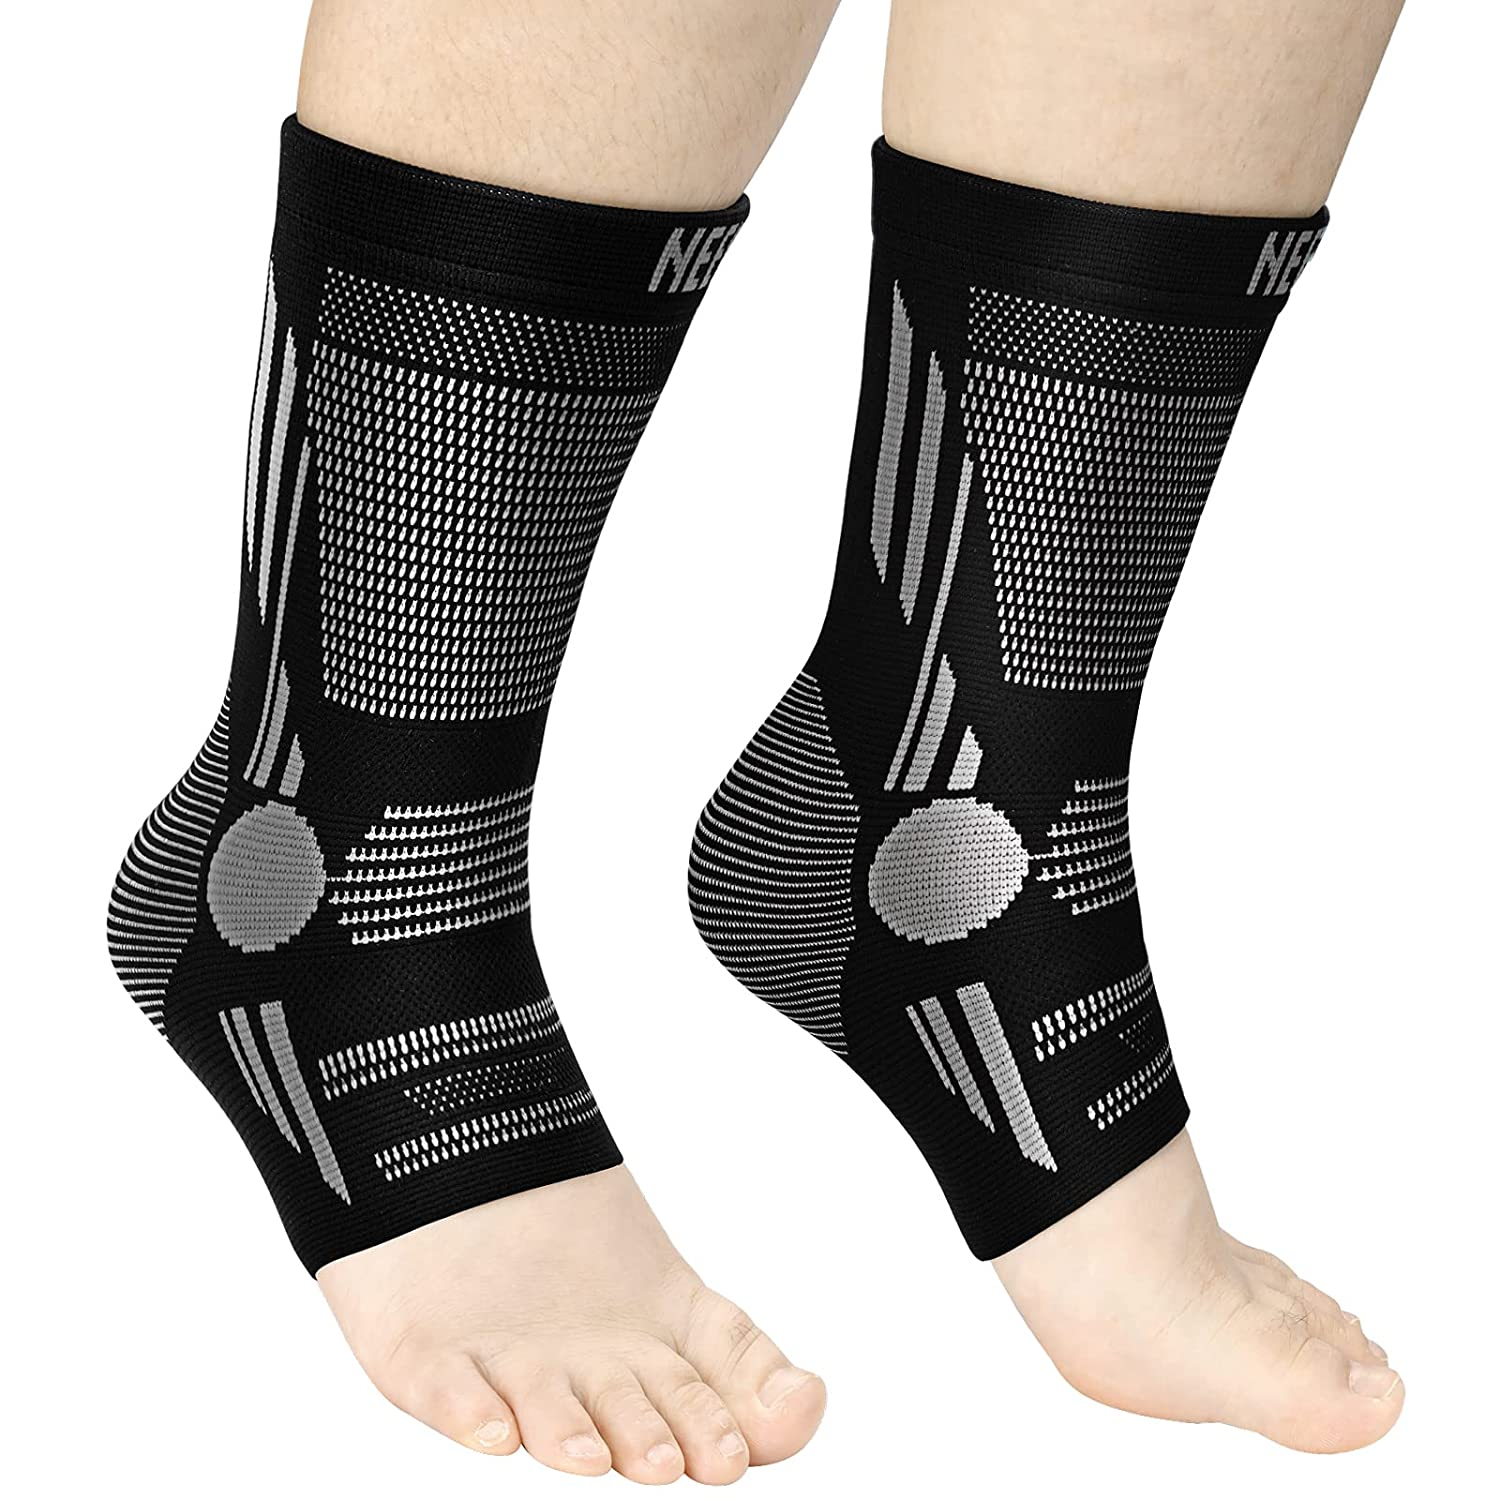 Complete Free Shipping NEENCA Professional Ankle Brace Pair Compression New mail order Sleeve